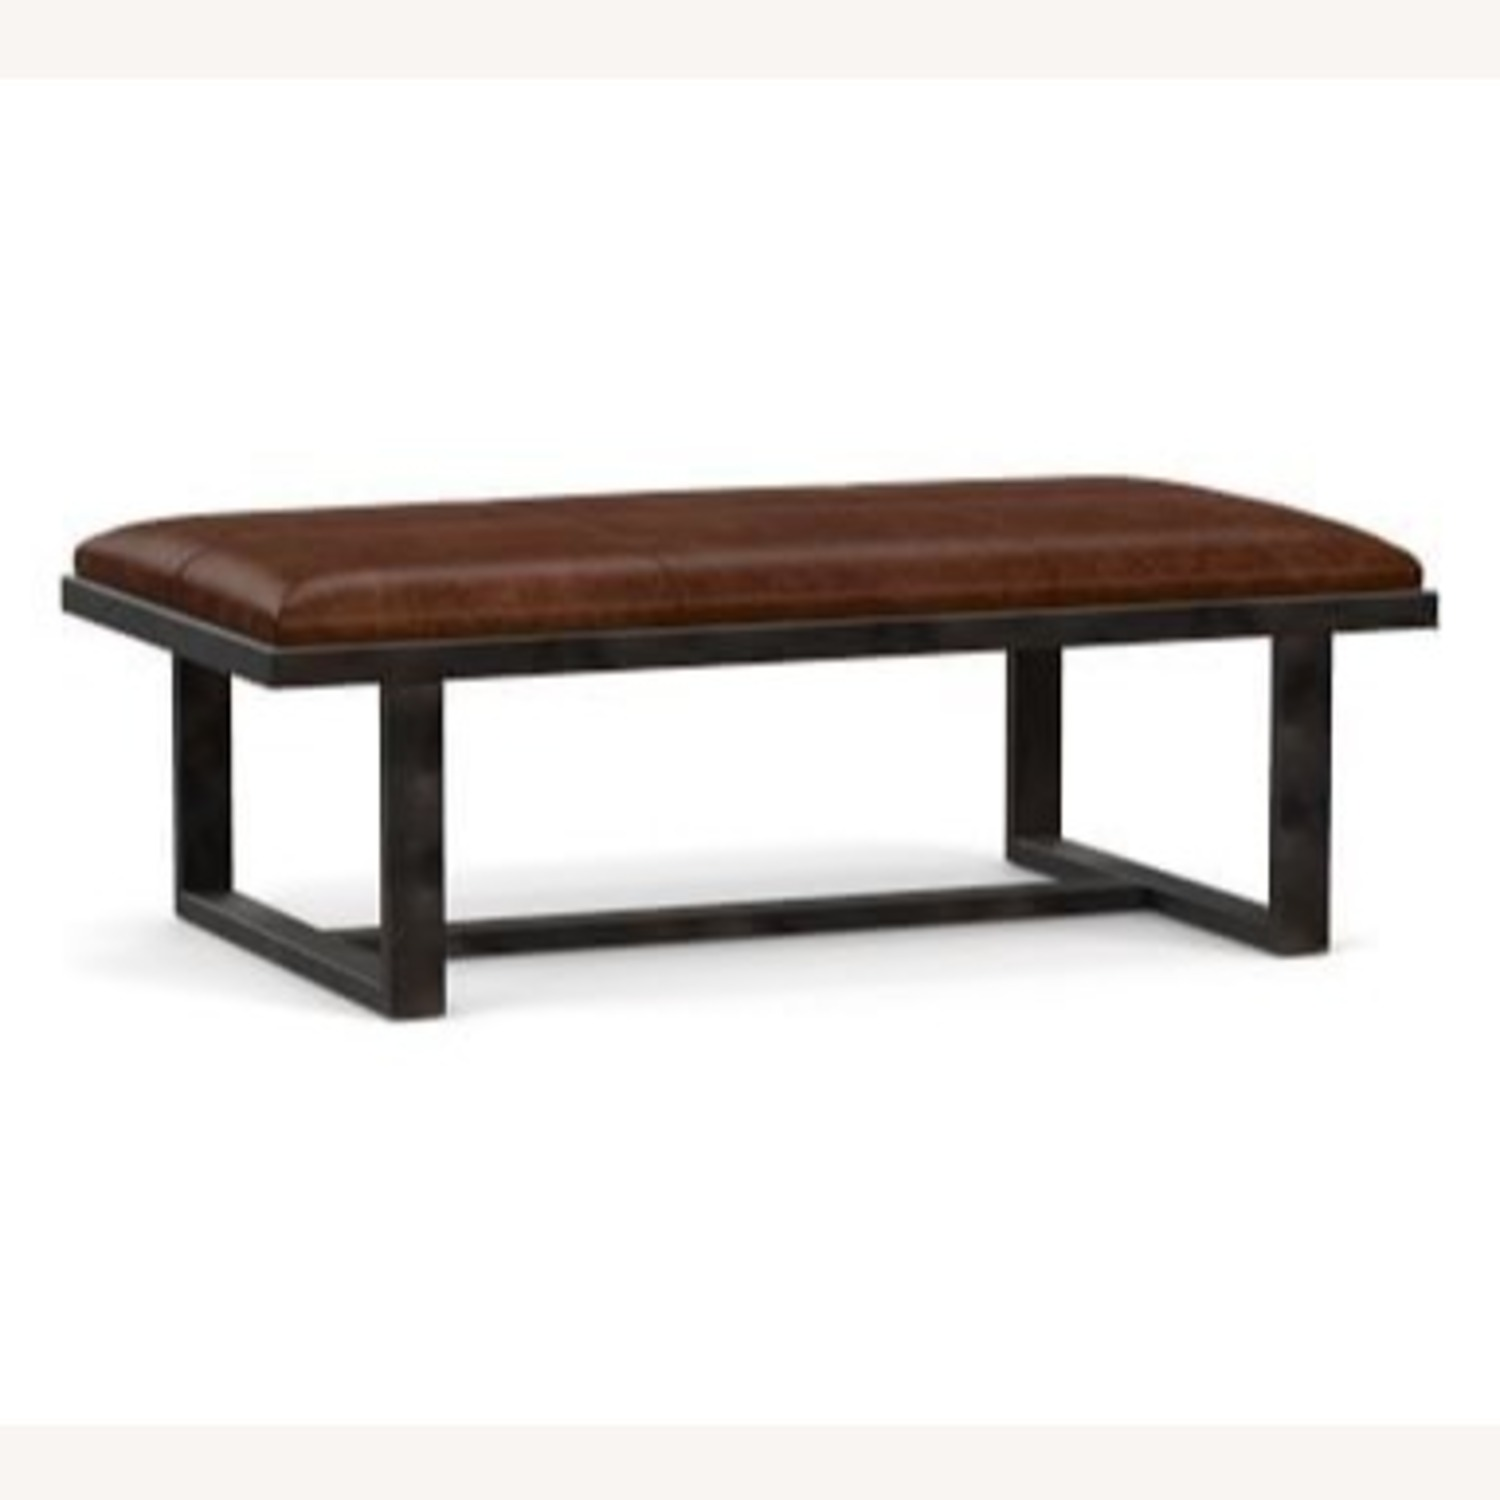 Pottery Barn Griffin Ottoman - image-1